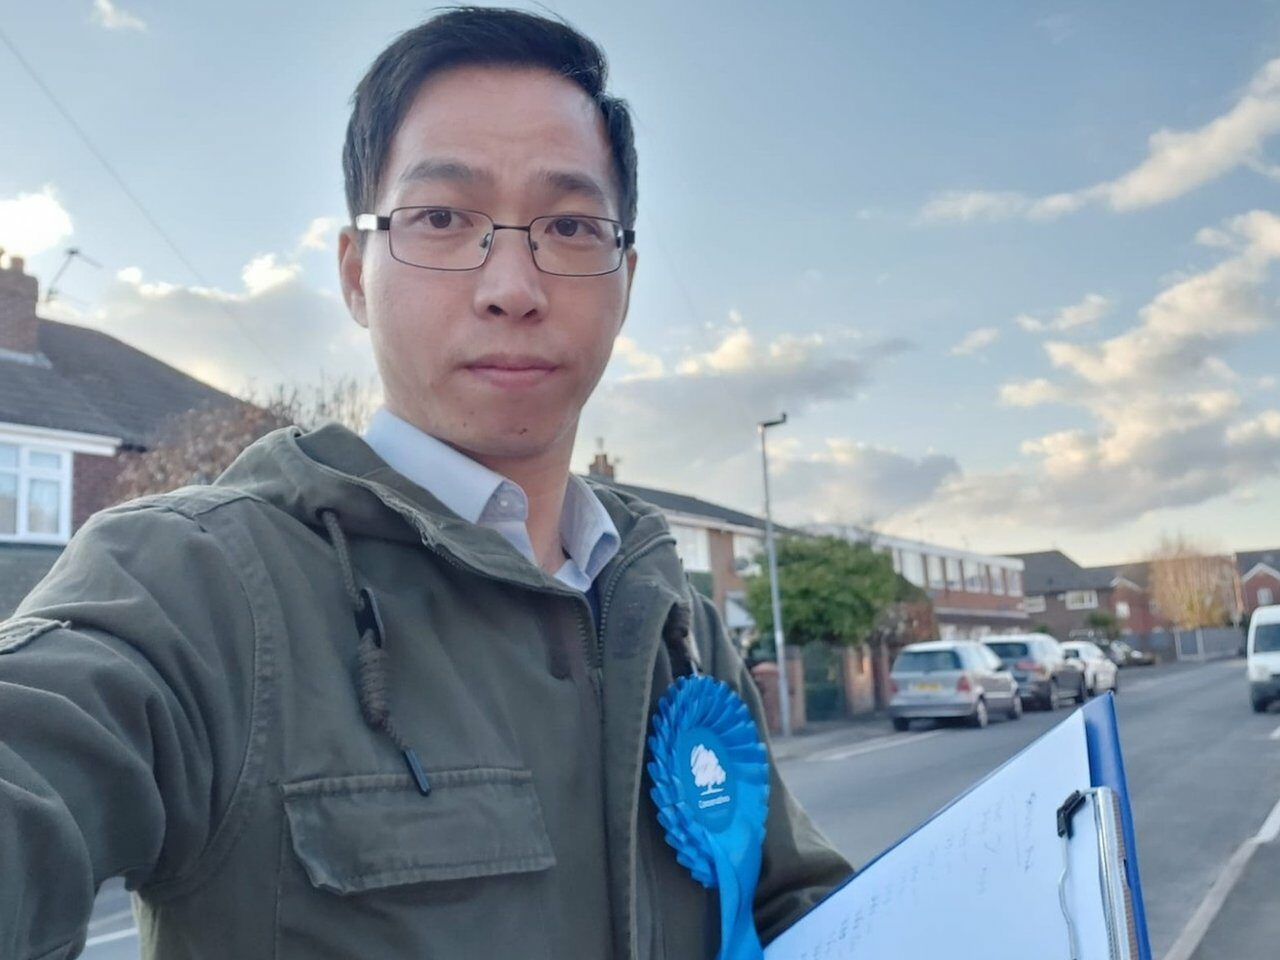 Timothy Cho takes a selfie wearing a Conservative Party rosette